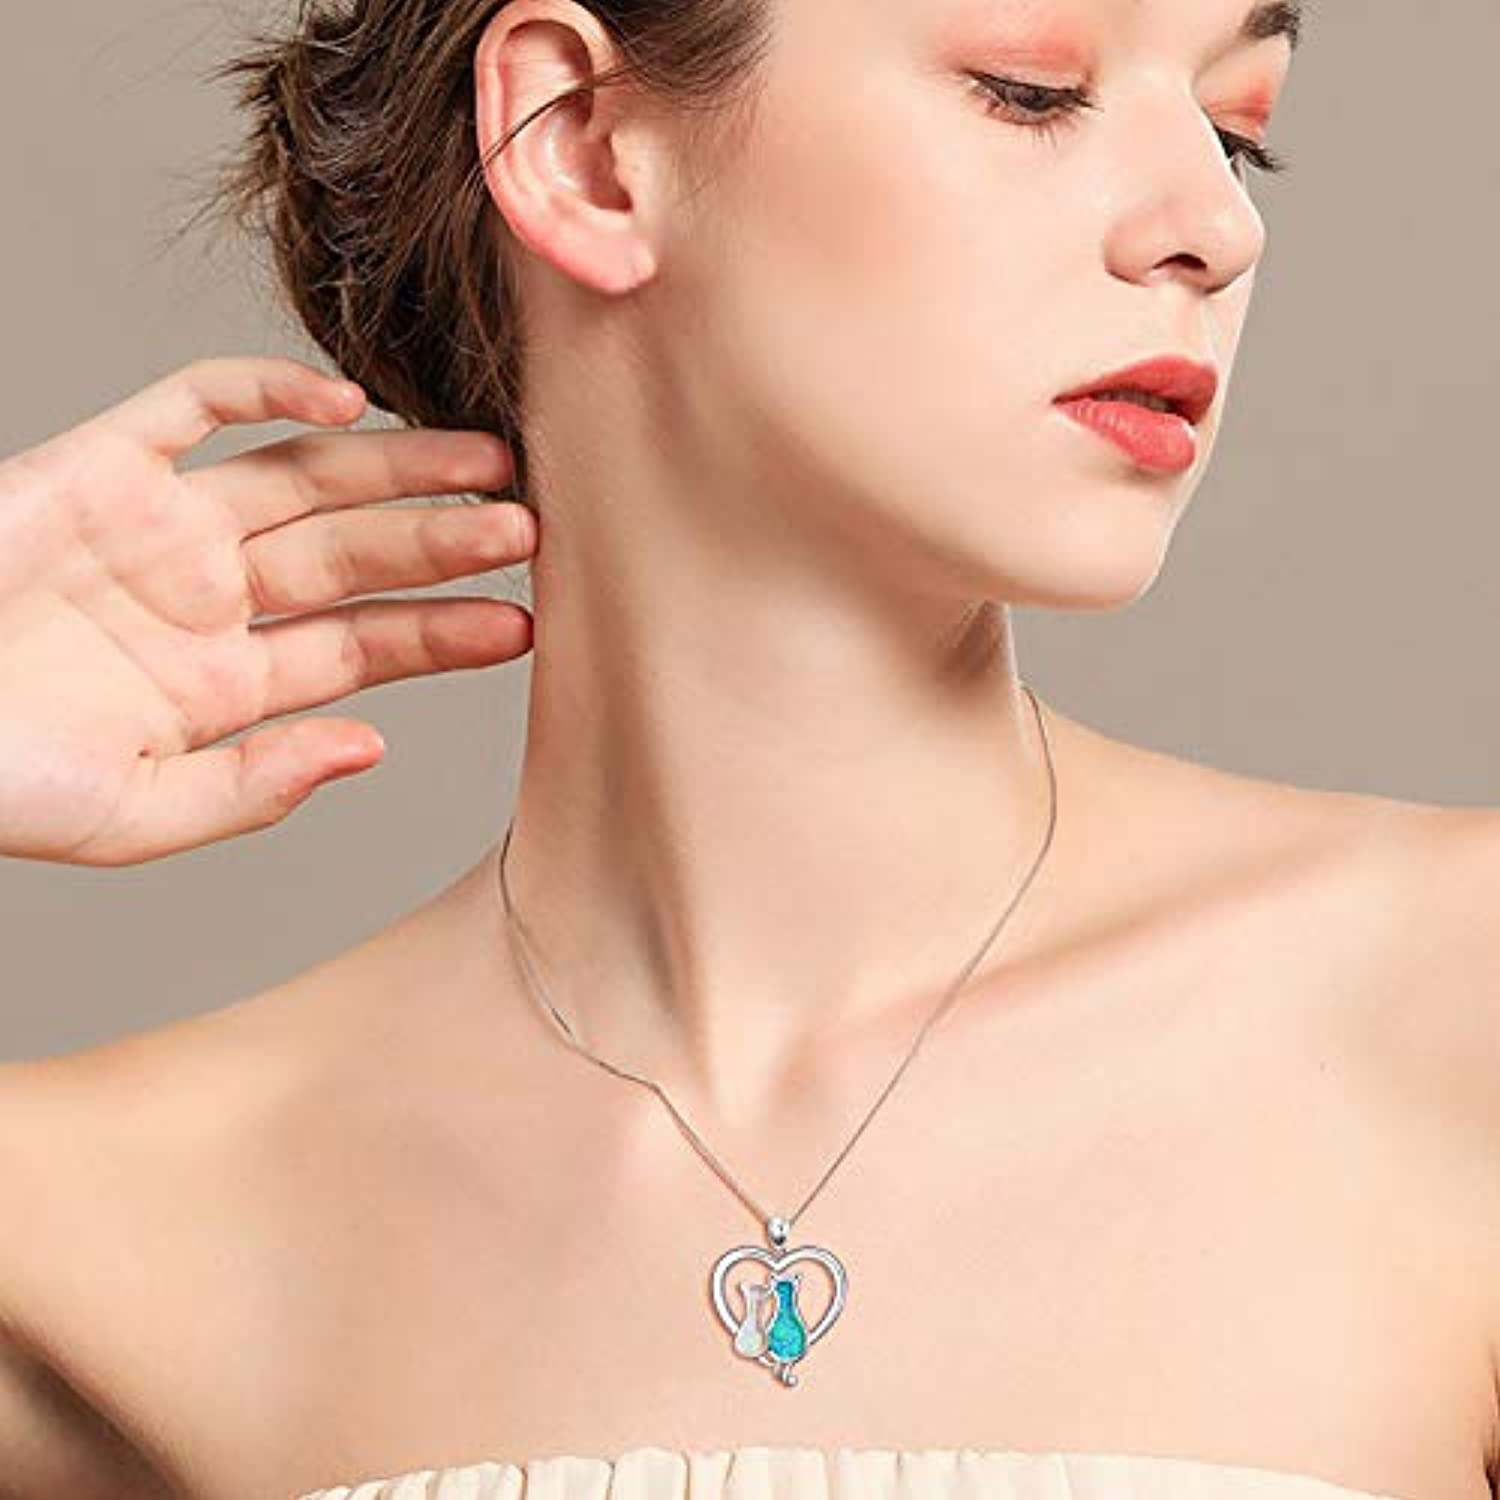 Angel caller Cat Necklaces 925 Sterling Silver Jewelry Cute Double Two-Tone Cat Pendant Cubic Zirconia Necklace Rolo Chain,Eternal Love Heart Necklace for Women,Girls